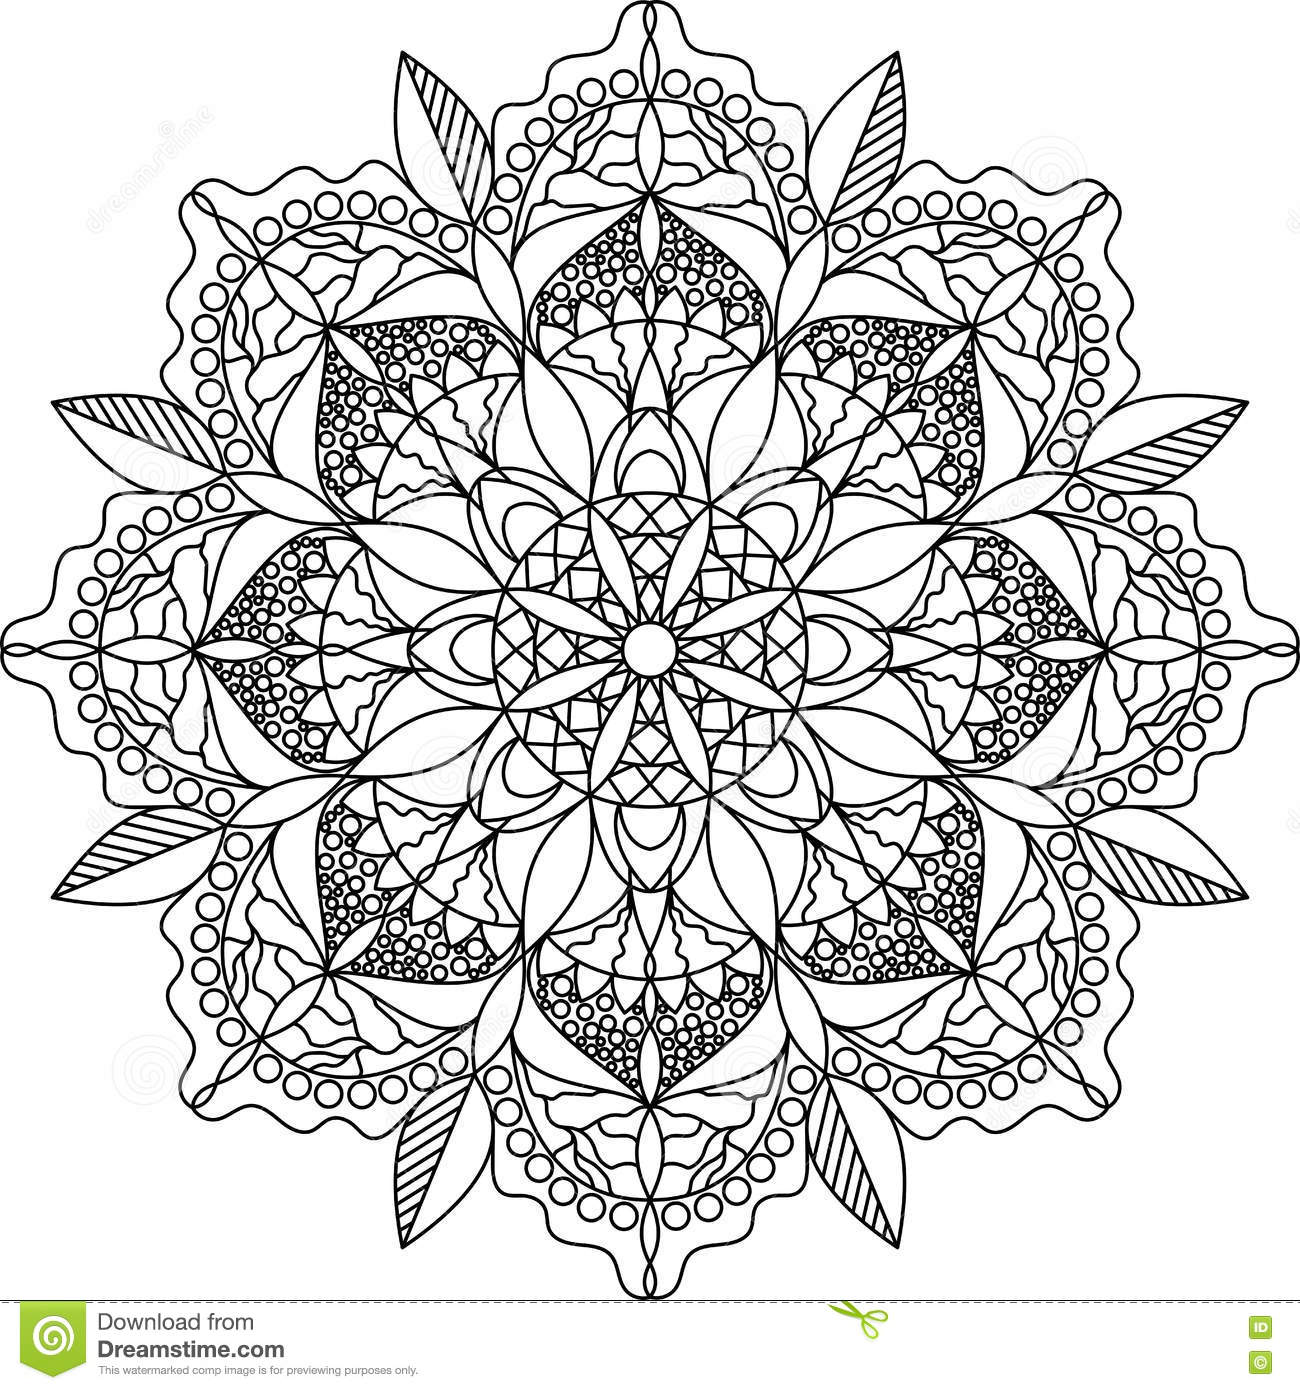 Adult Coloring Page Mandala Stock Vector Illustration Of Mandala